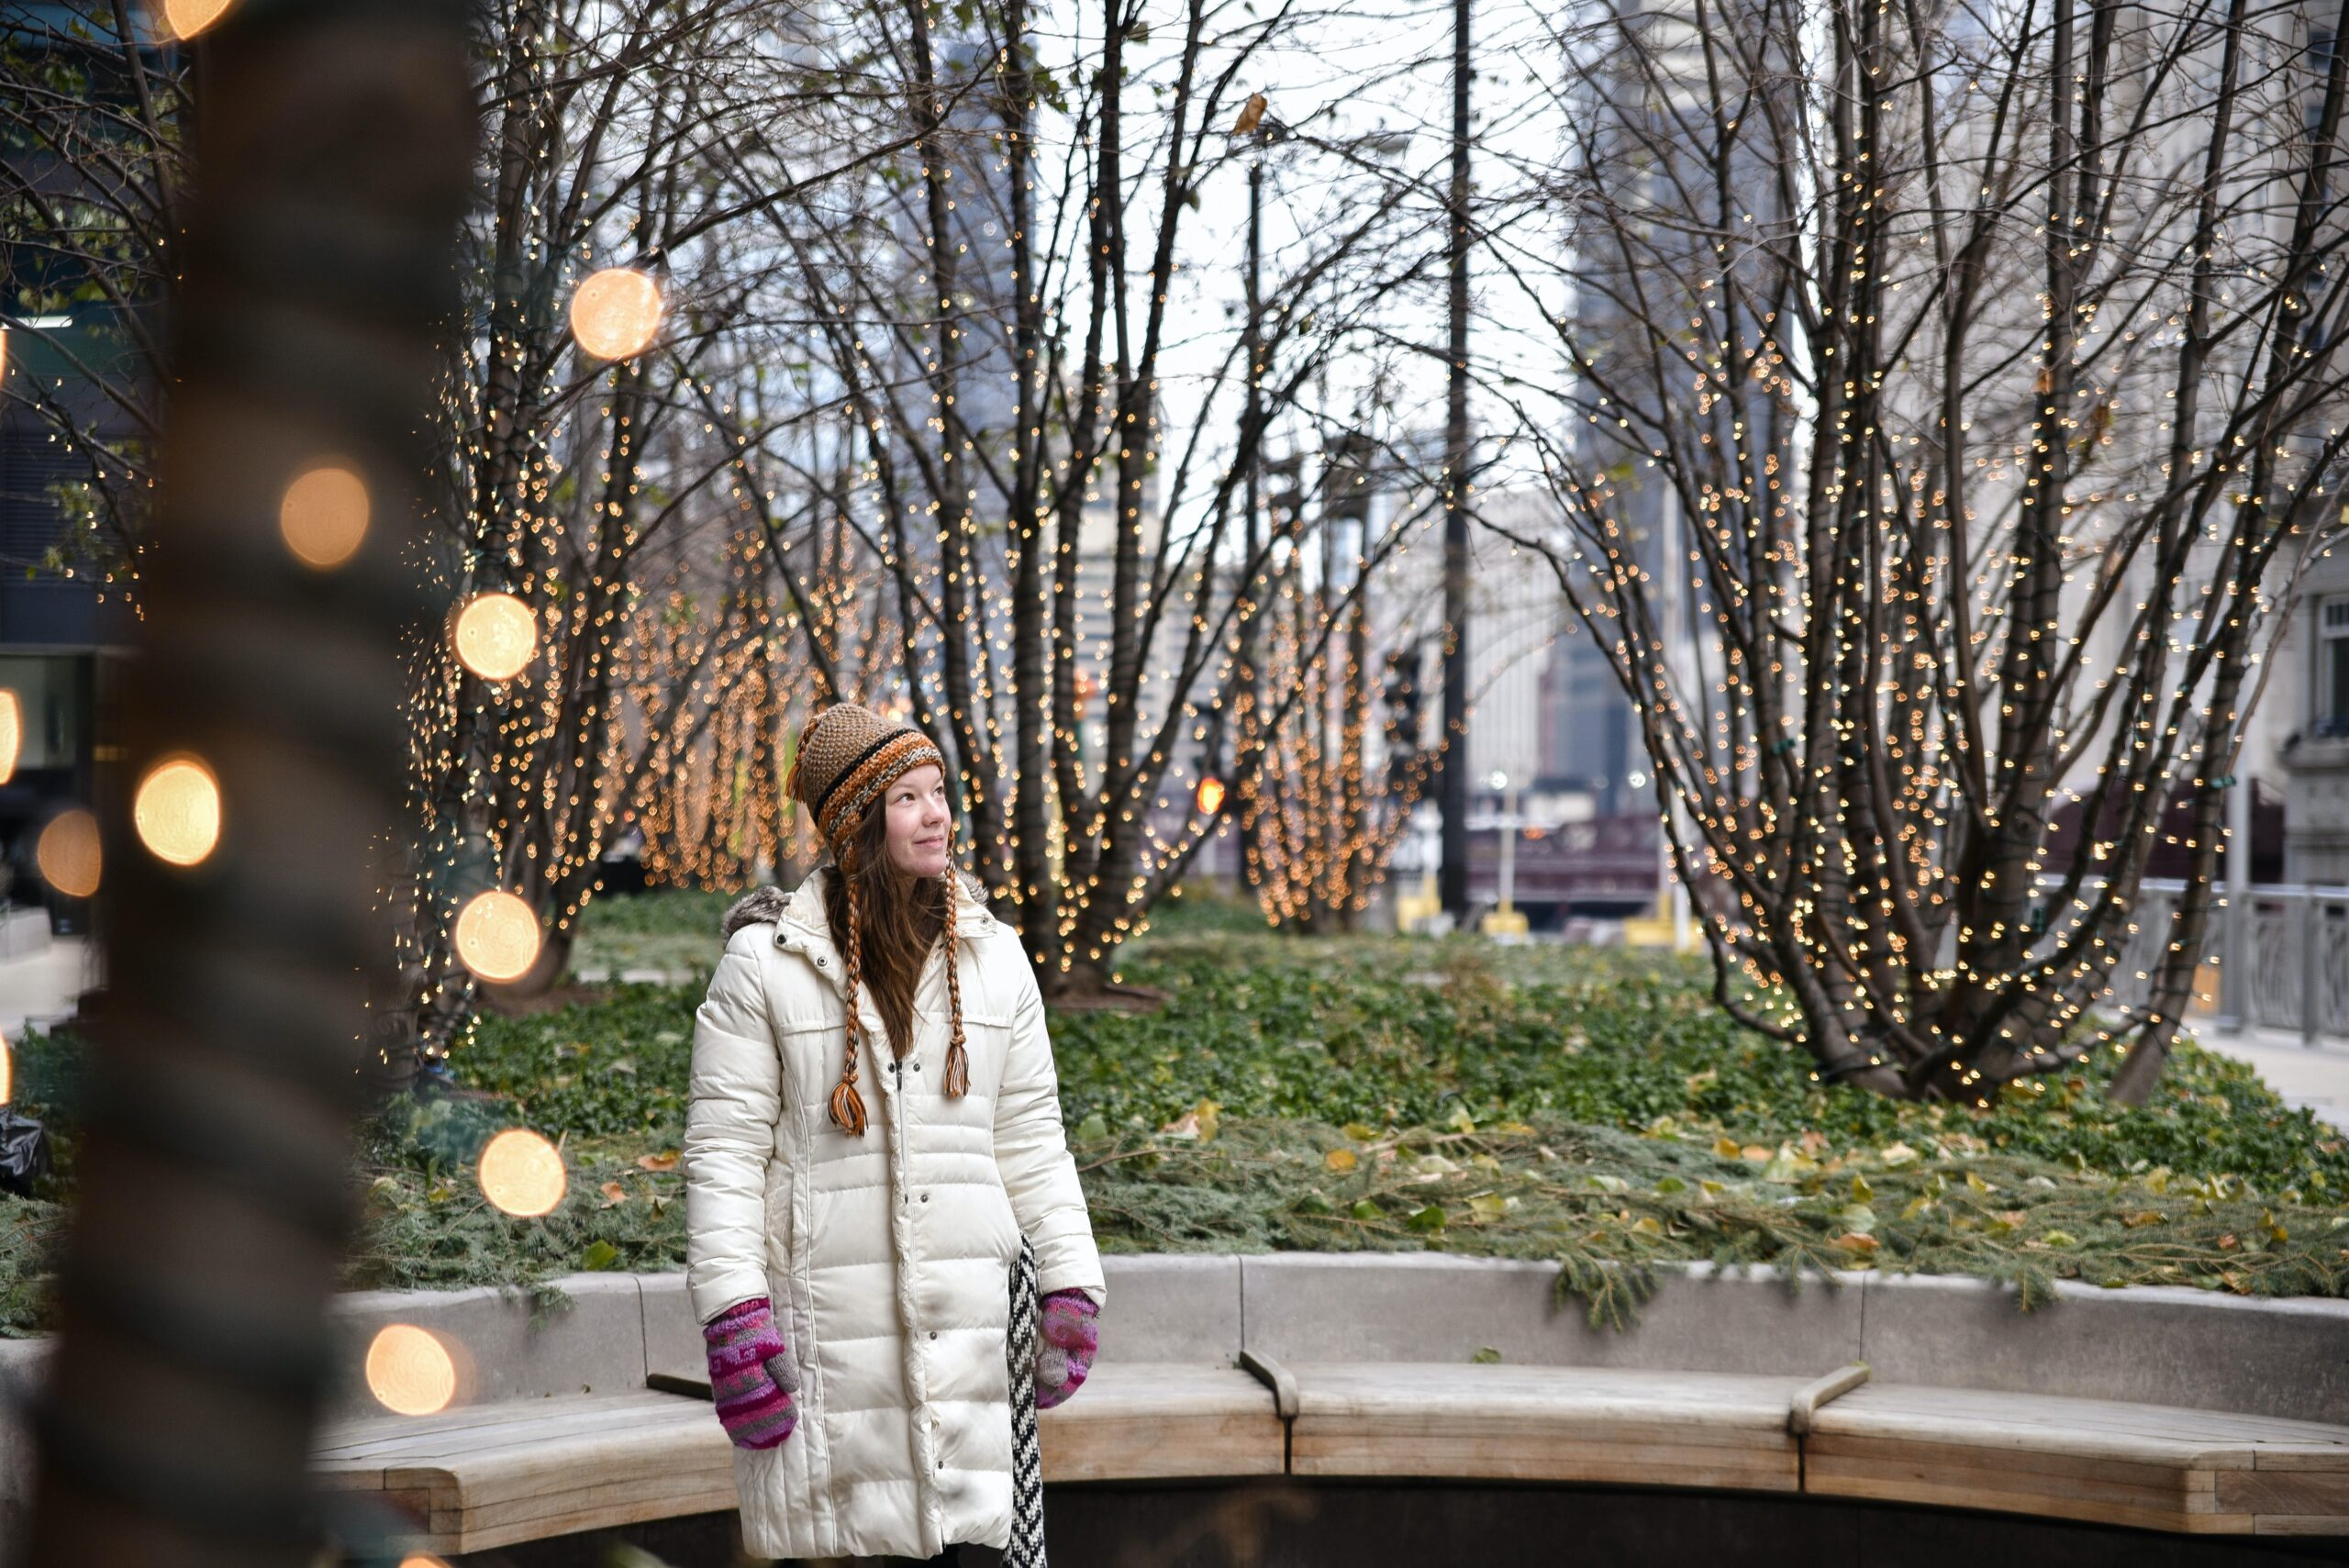 Looking for outdoor social distant Christmas and New Year things to do near downtown Chicago? Activities in the Loop!